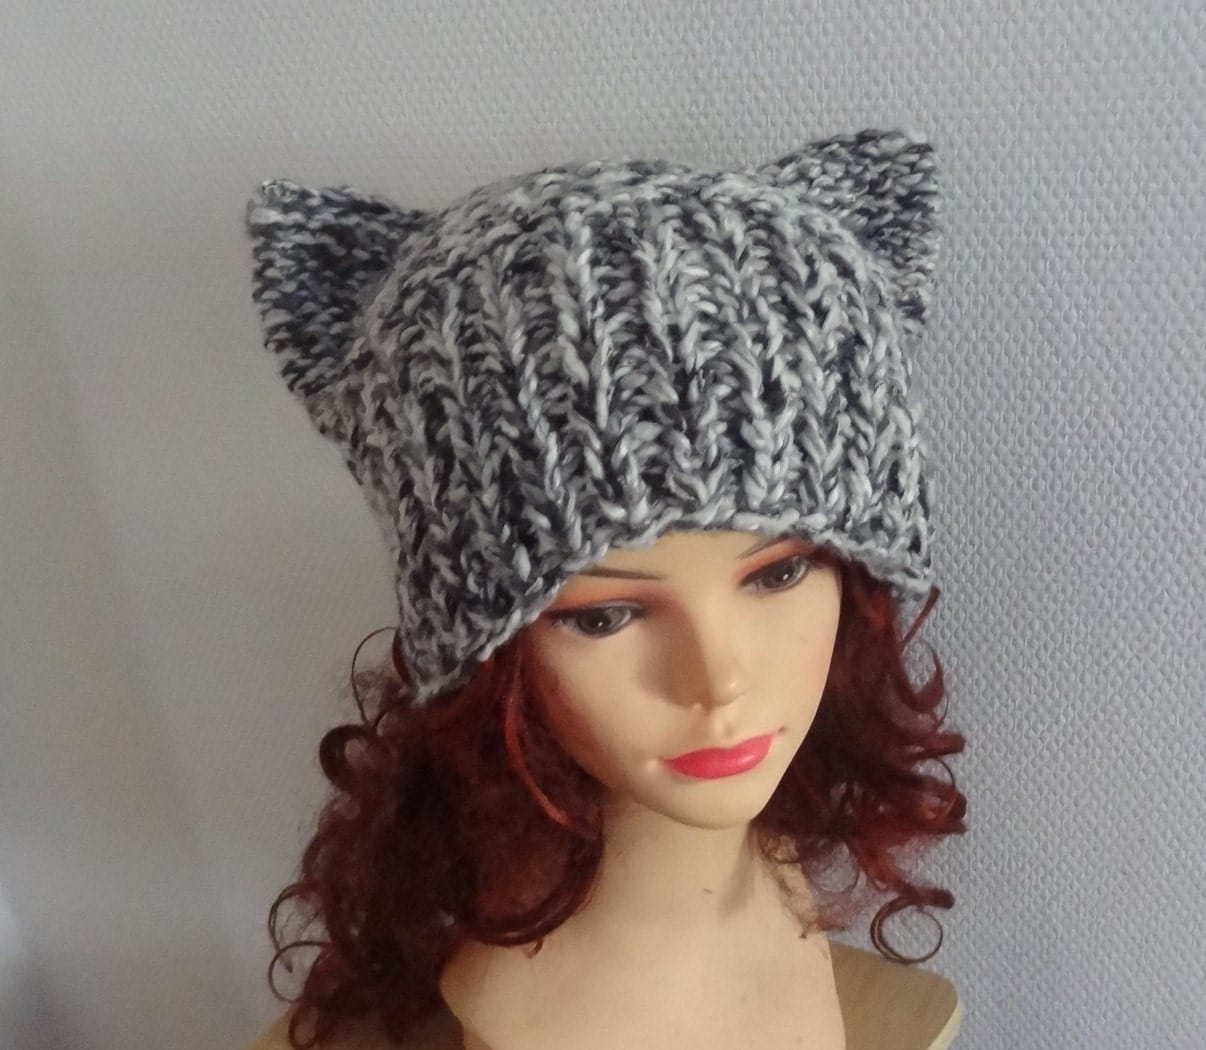 You searched for: ear hat! Etsy is the home to thousands of handmade, vintage, and one-of-a-kind products and gifts related to your search. No matter what you're looking for or where you are in the world, our global marketplace of sellers can help you find unique and affordable options. Let's get started!